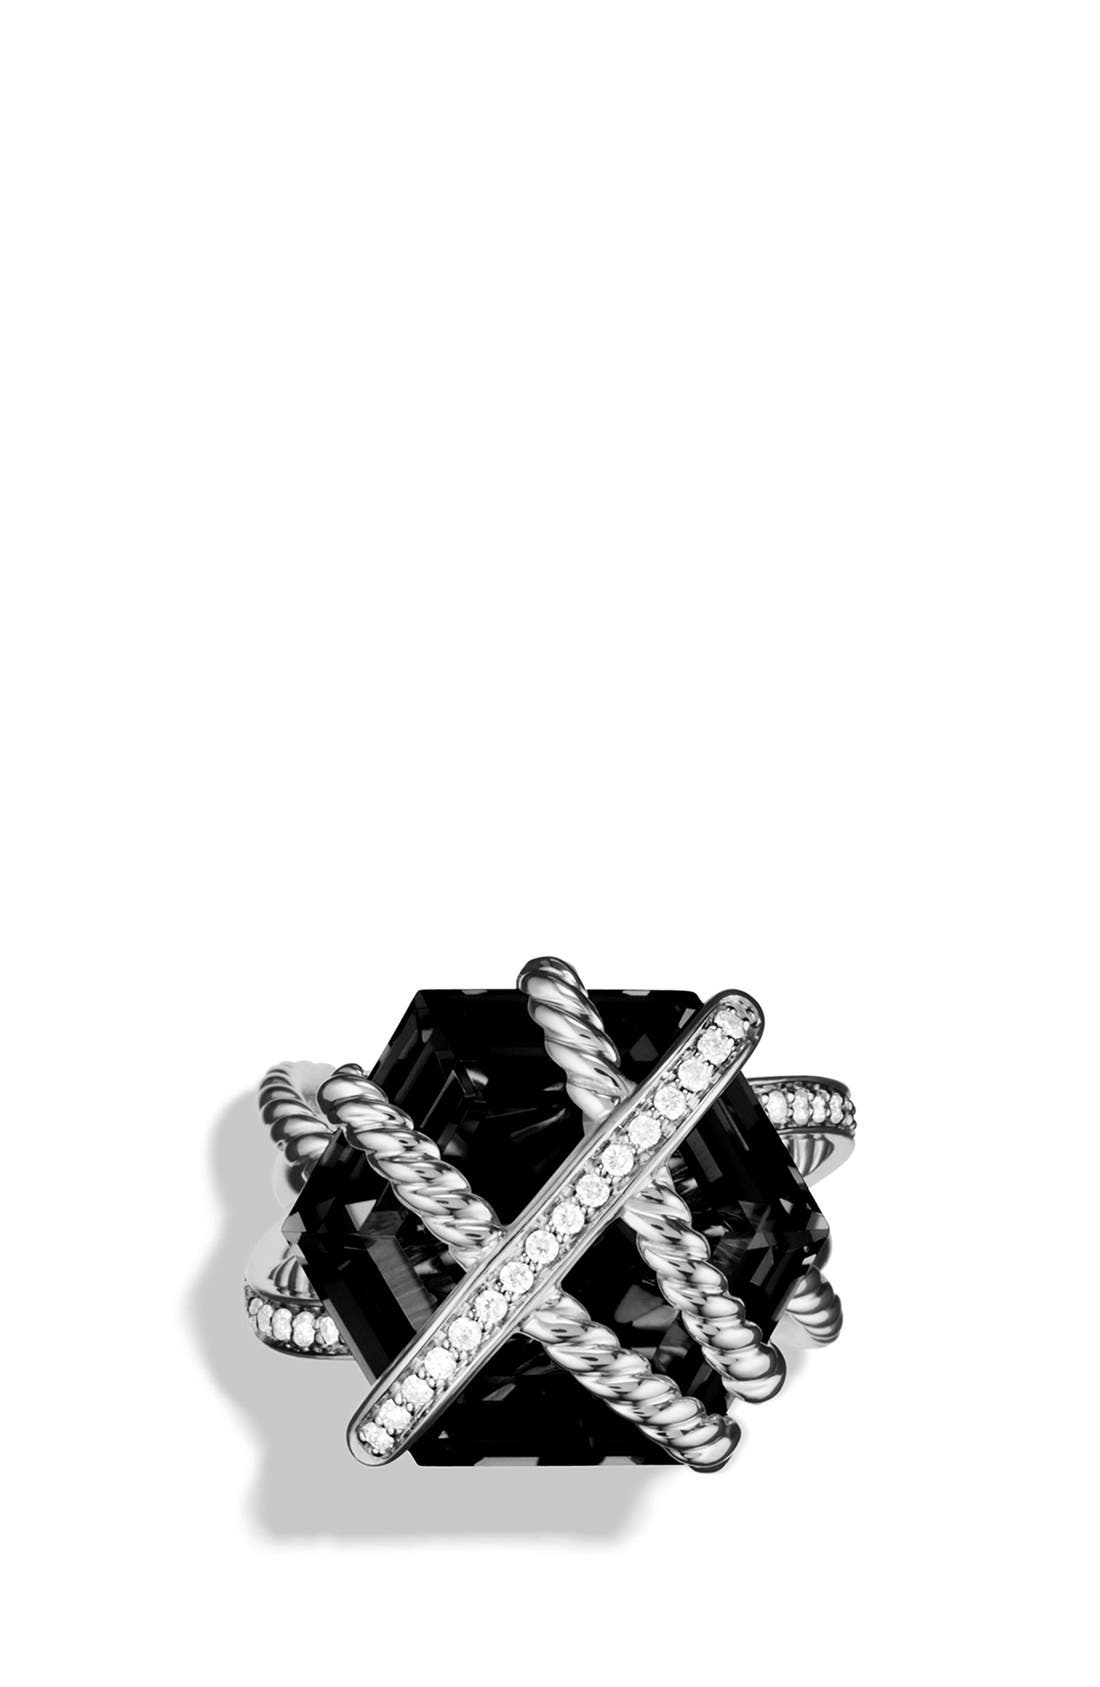 DAVID YURMAN,                             'Cable Wrap' Ring with Black Onyx and Diamonds,                             Alternate thumbnail 4, color,                             001